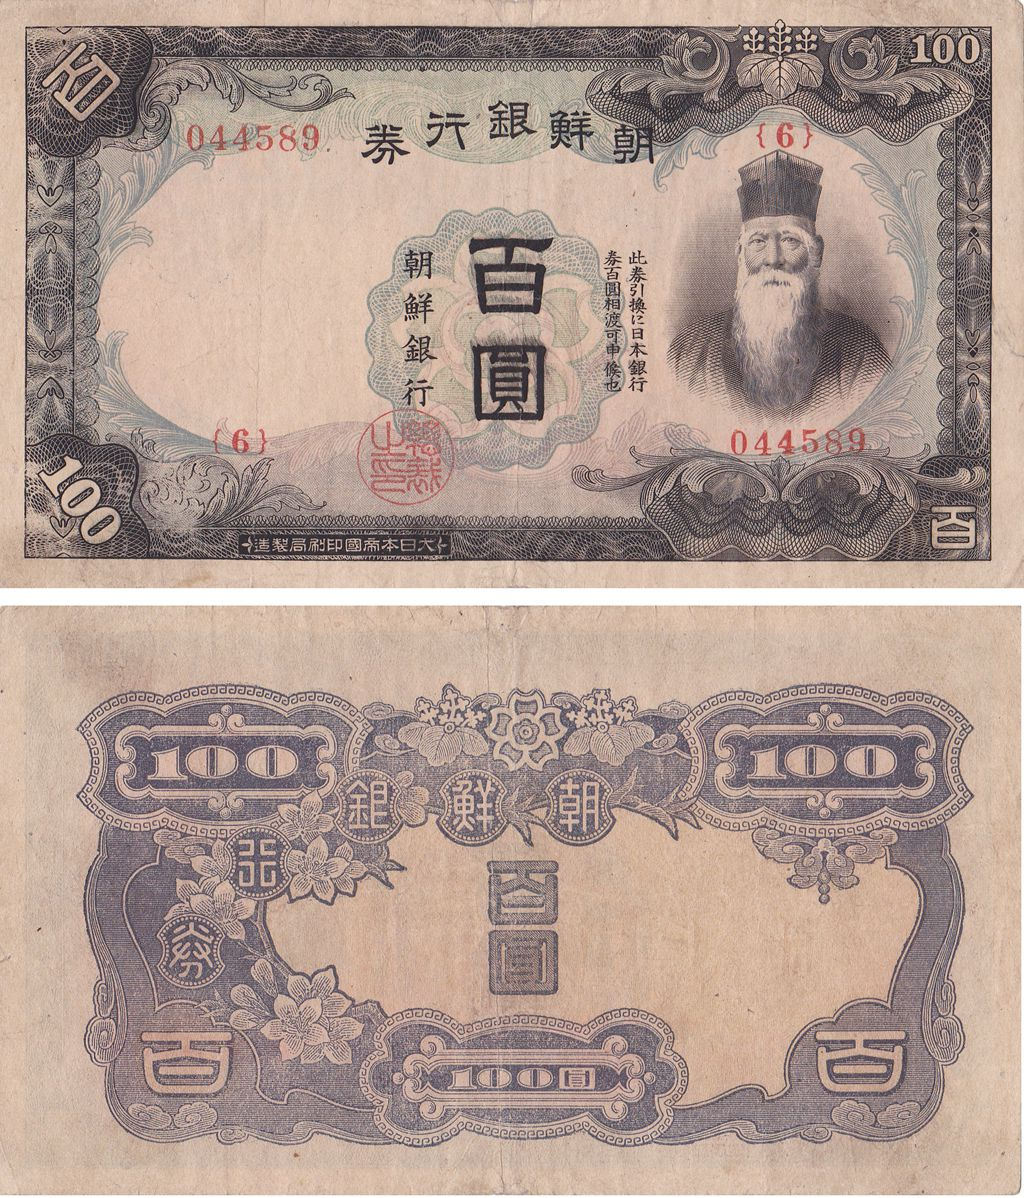 L1030, Bank of Korea (Chosen), 100 Won (Yen), 1944 Issue P-37